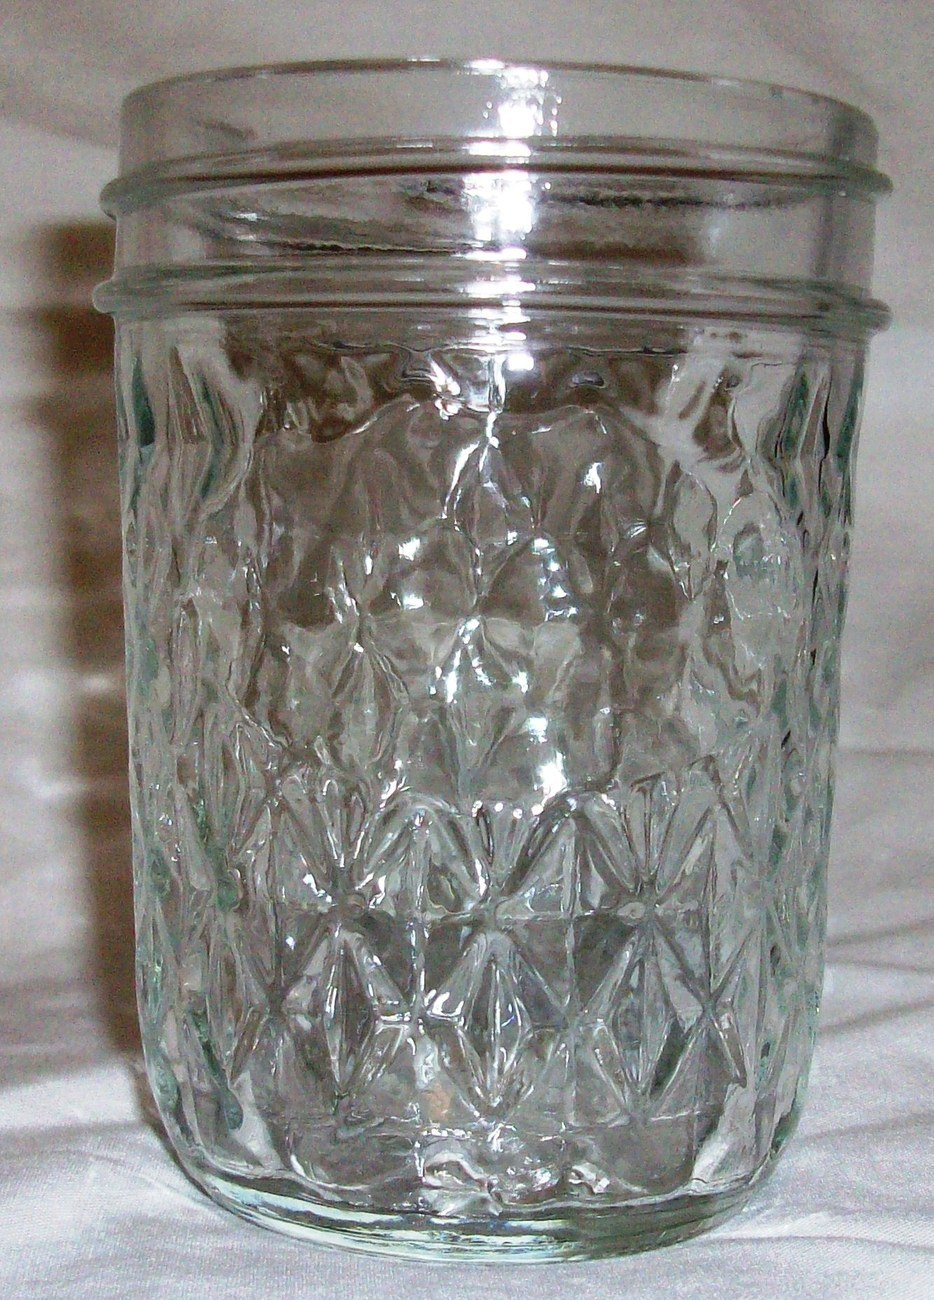 Half Pint Ball Quilted Crystal Canning Jar 1 cup Made in USA Jelly Jar